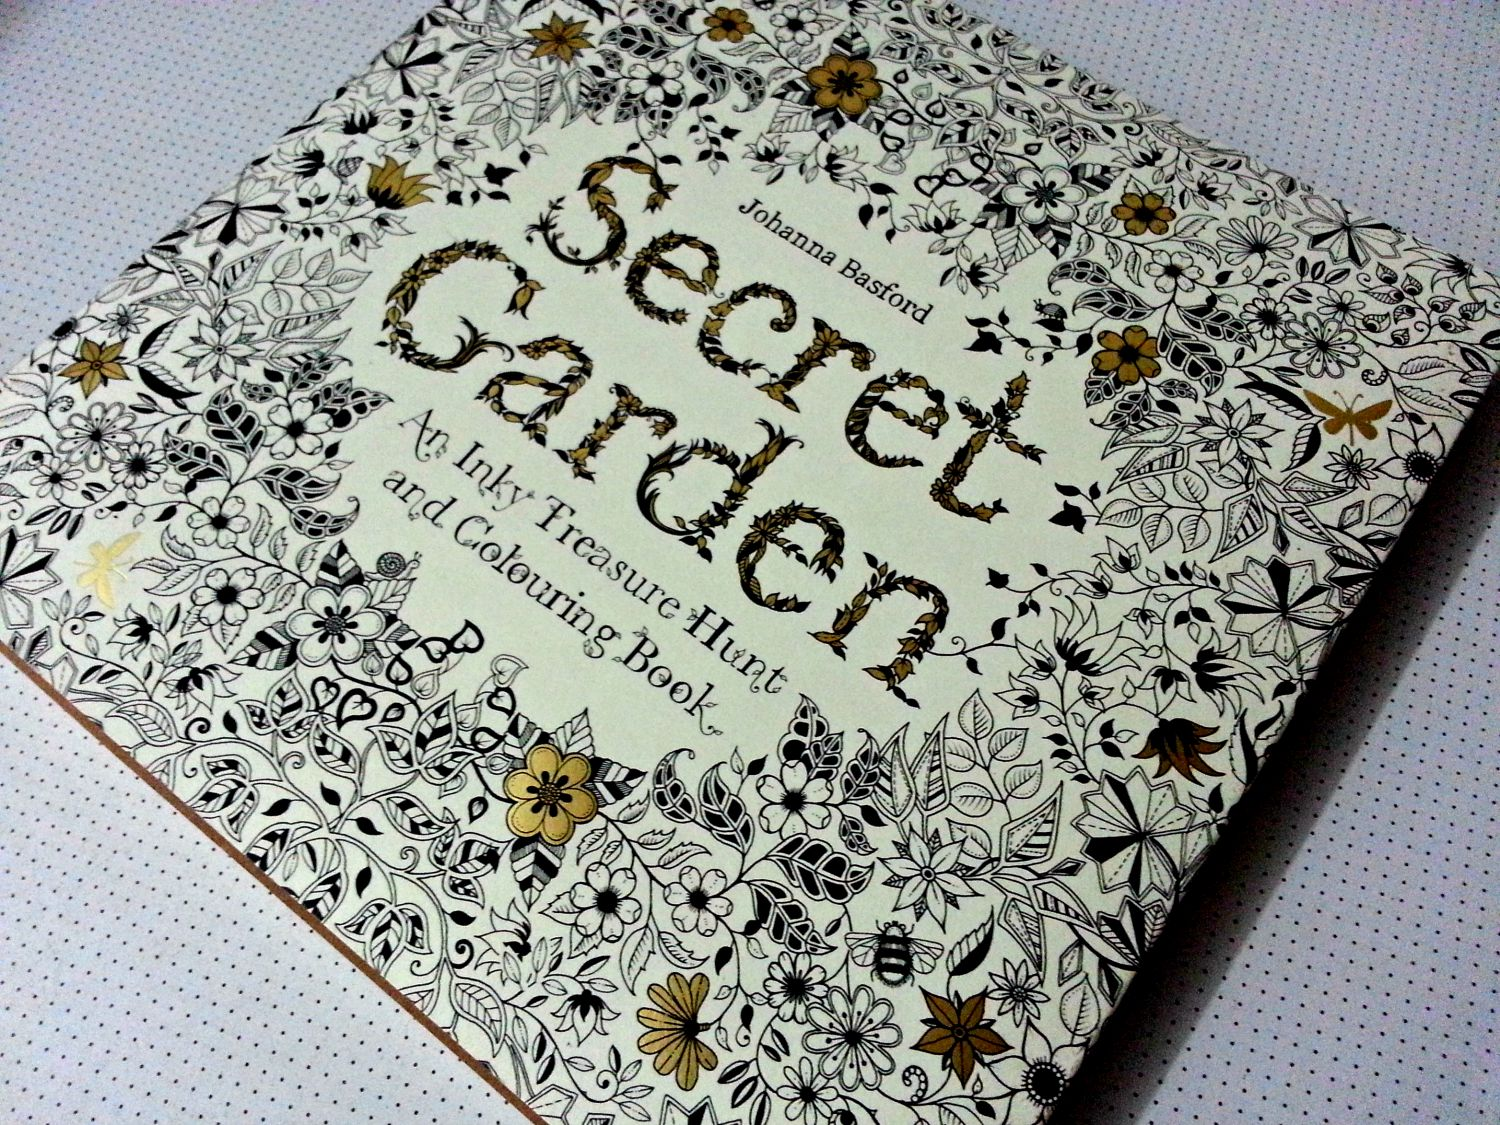 the book itself uncolored is gorgeous - My Secret Garden Coloring Book